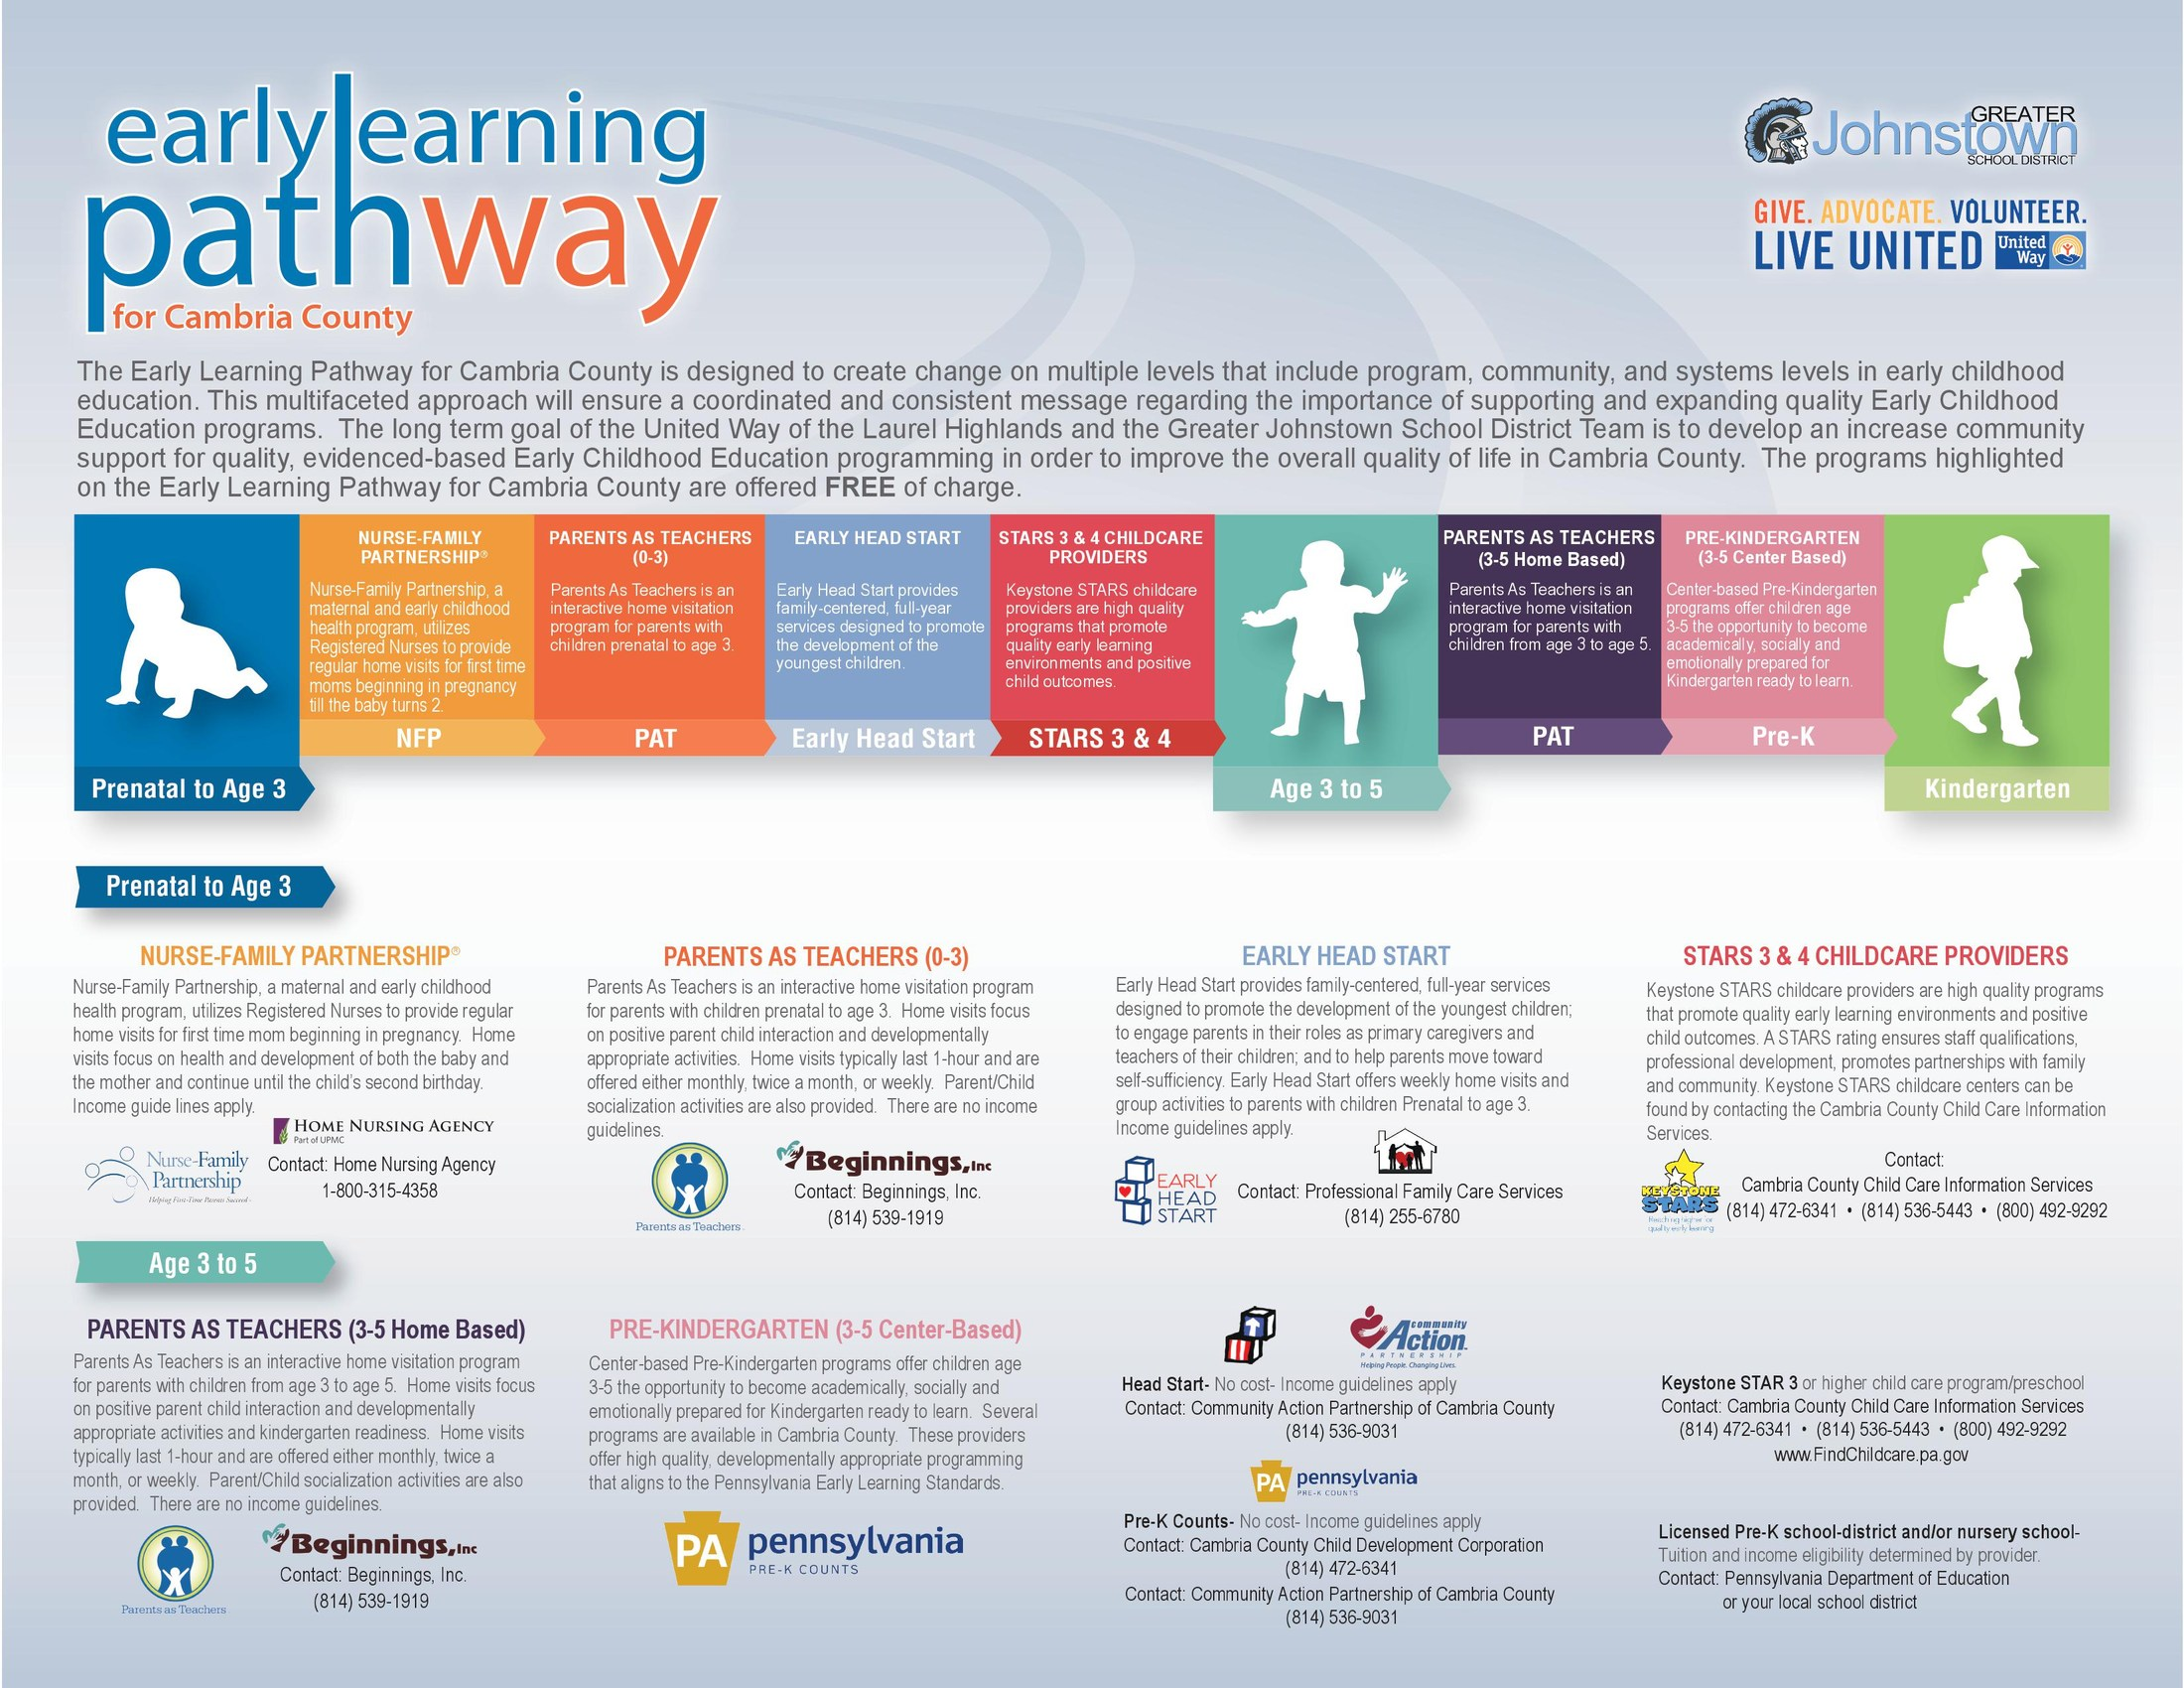 Early Learning Pathway Image